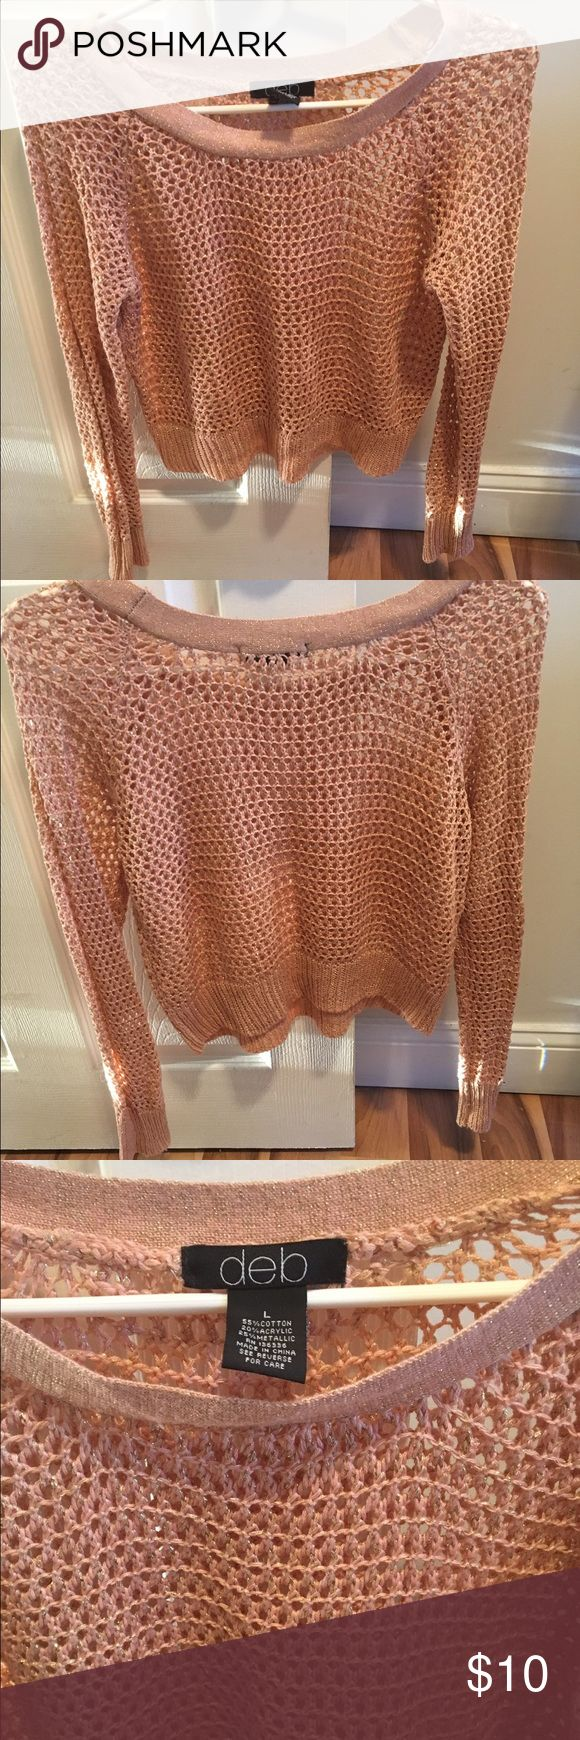 Deb shop crop top Hi, up for sale is this net crop sweater top with gold speckles, this sort of Rose Gold, Peachy Pink tone color is super popular right now. It's a size L but would fit a person who wears a Medium or Large. I maybe wore this about 3-4 times but it's in great condition. Deb Sweaters Crew & Scoop Necks